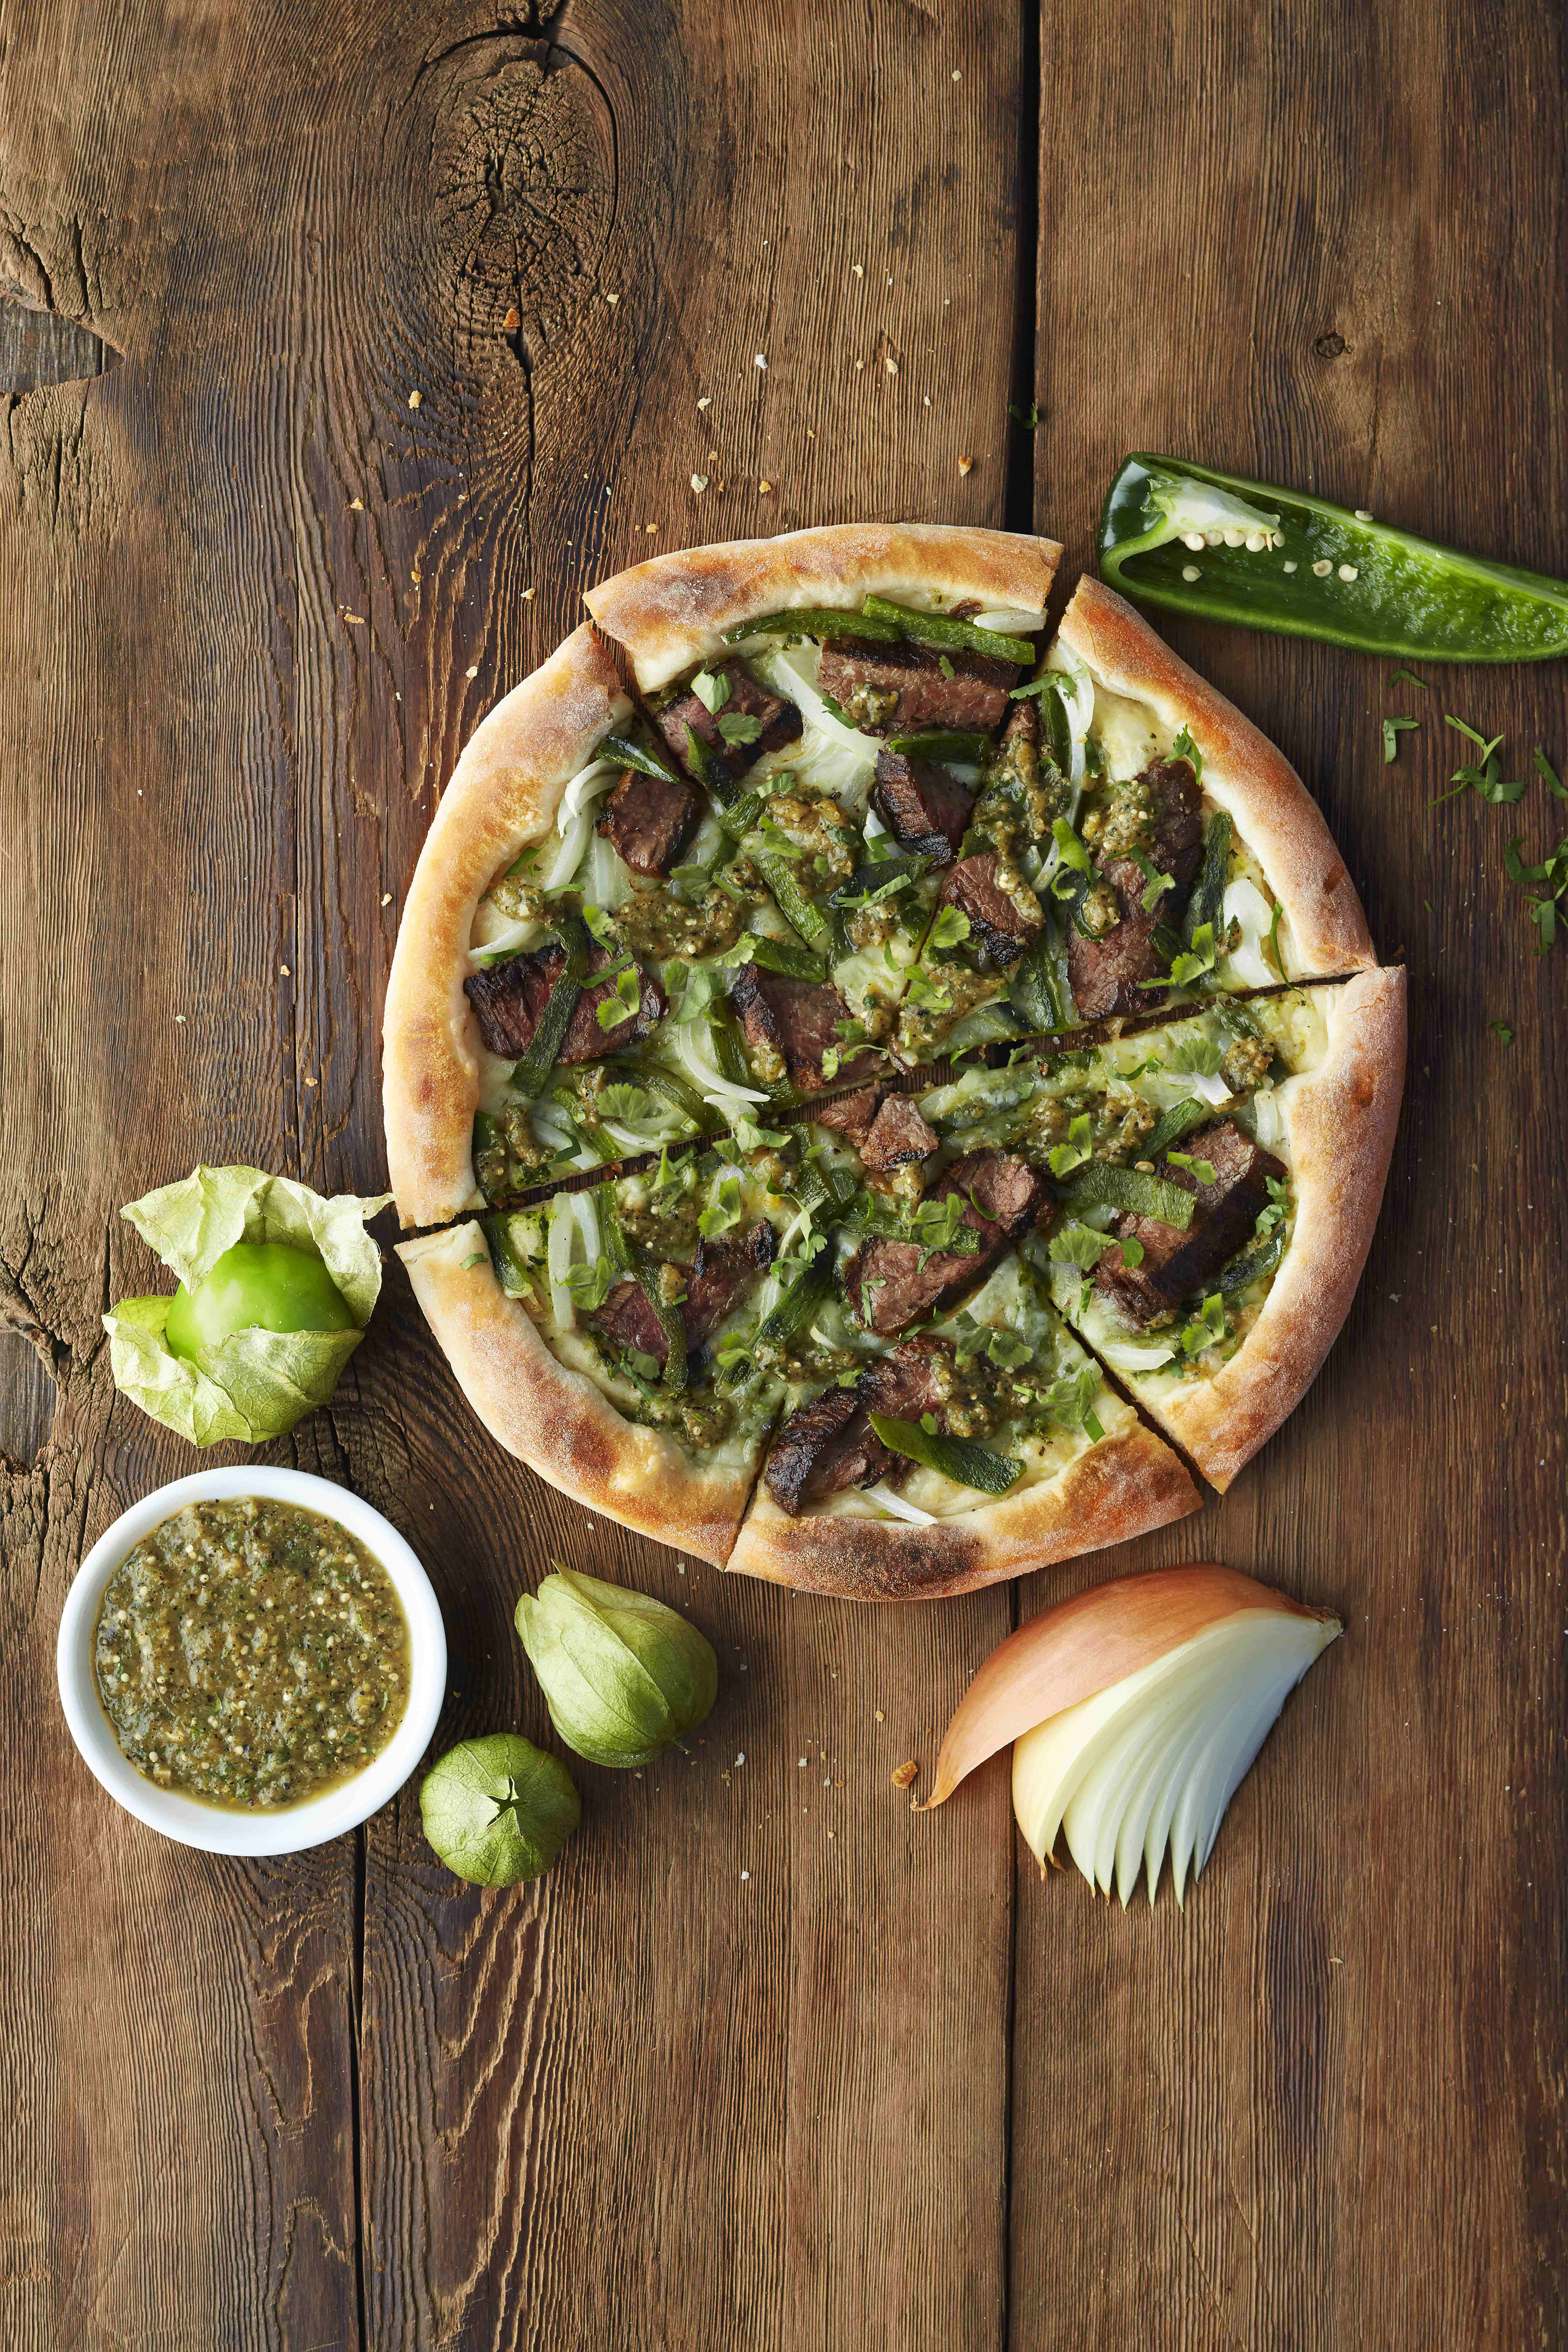 California Pizza Kitchen Ups the Ante on Food and Beverage